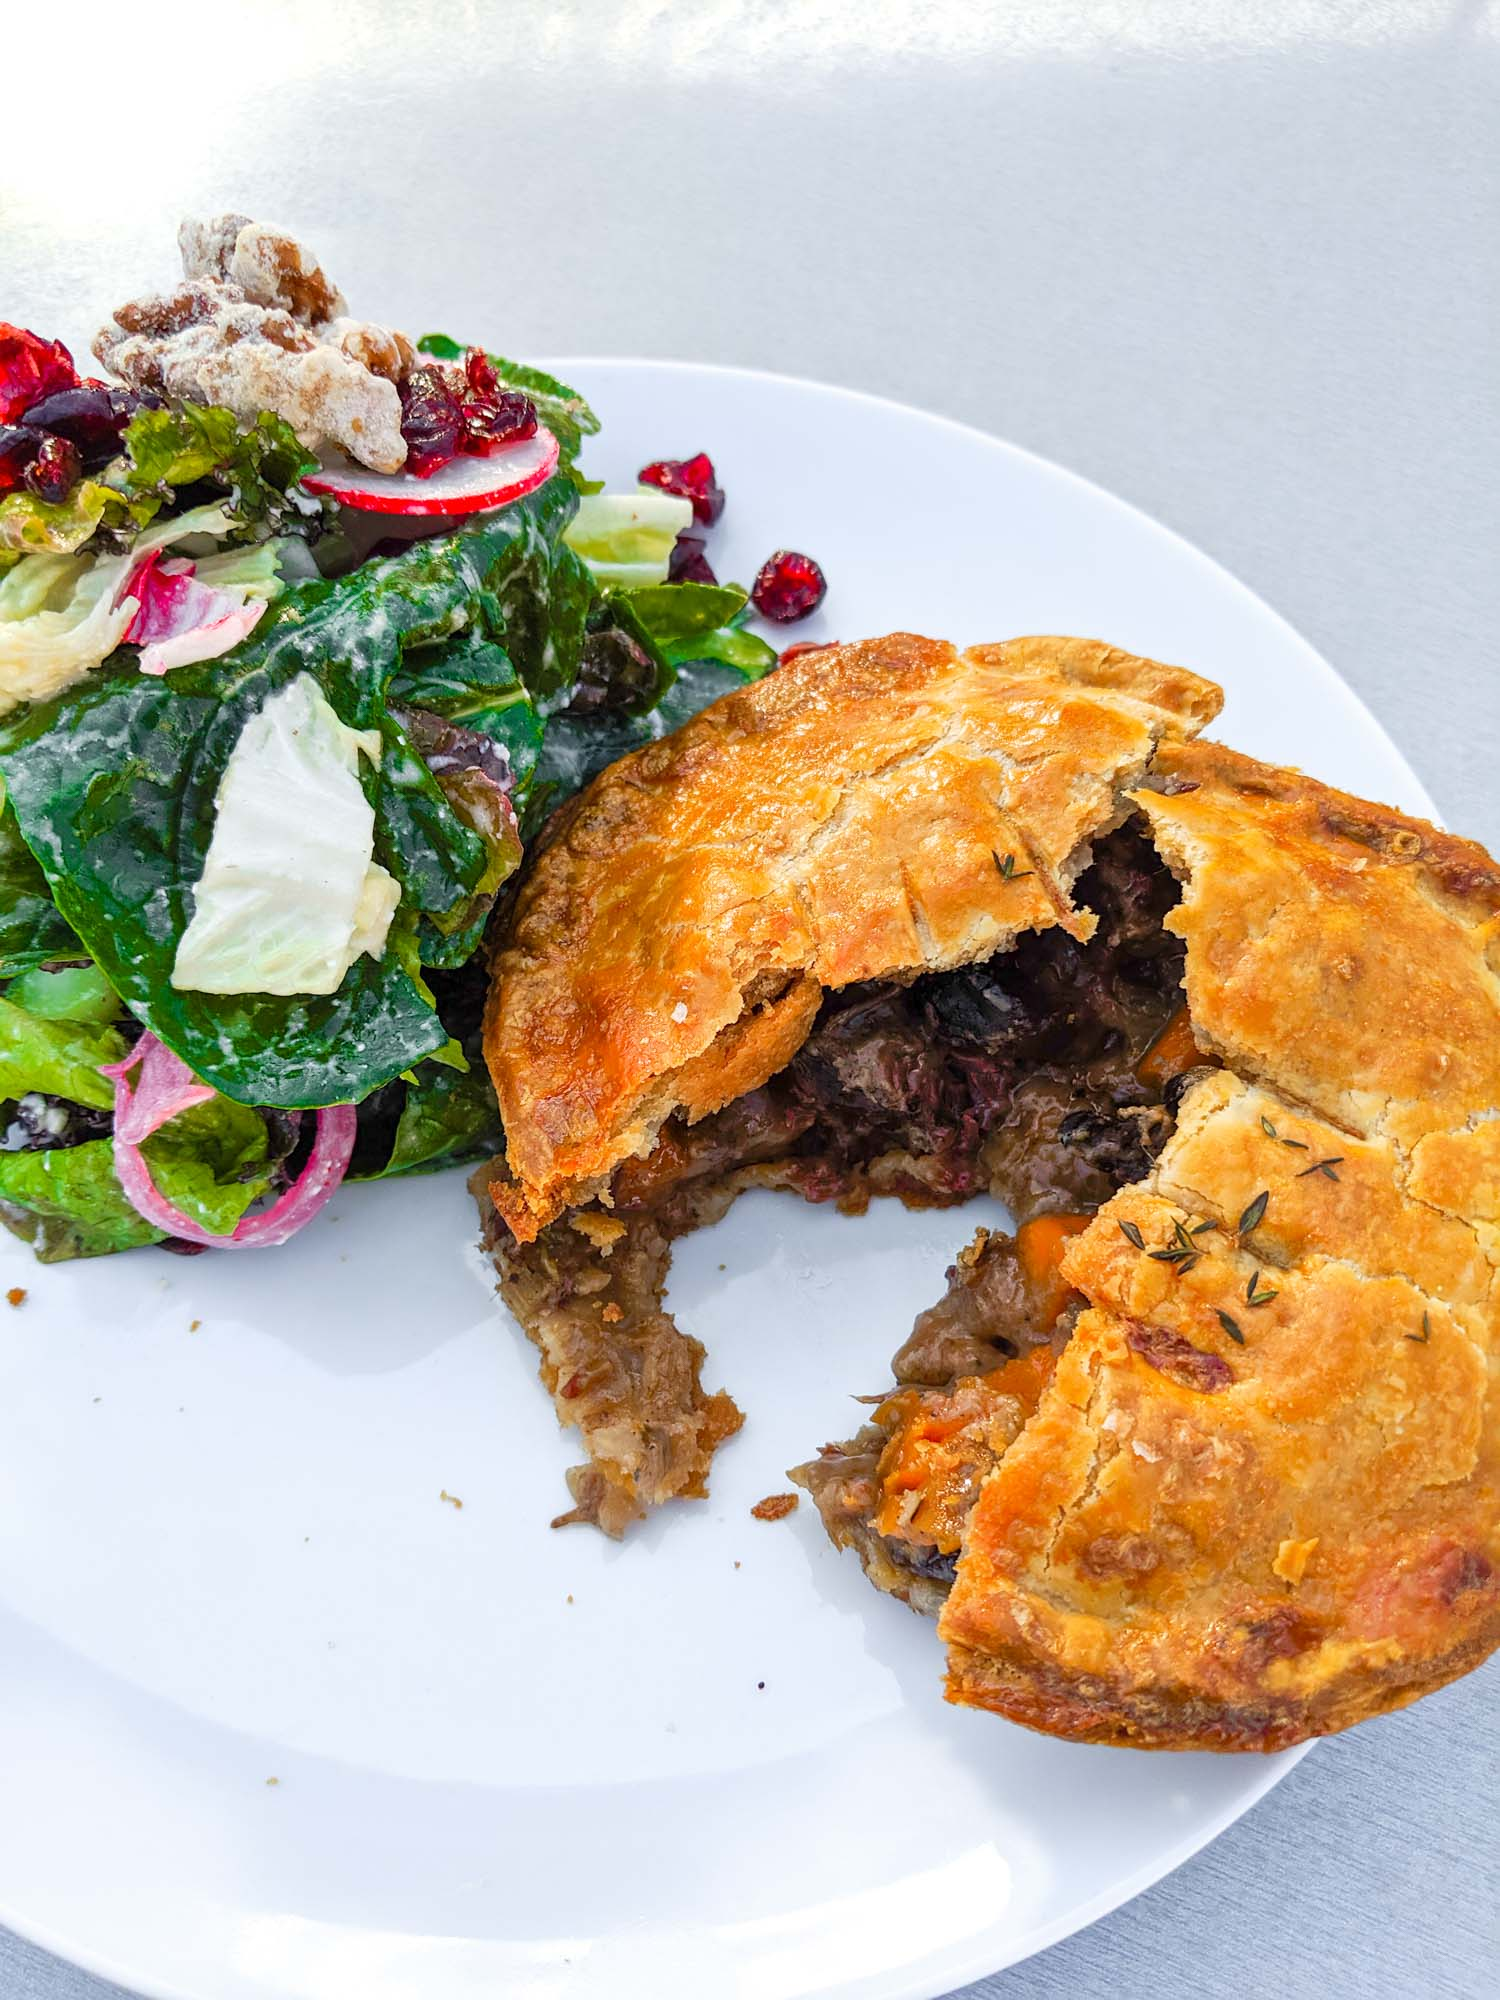 Easy Weeknight The Best Steak and Mushroom Pie Recipe You ...